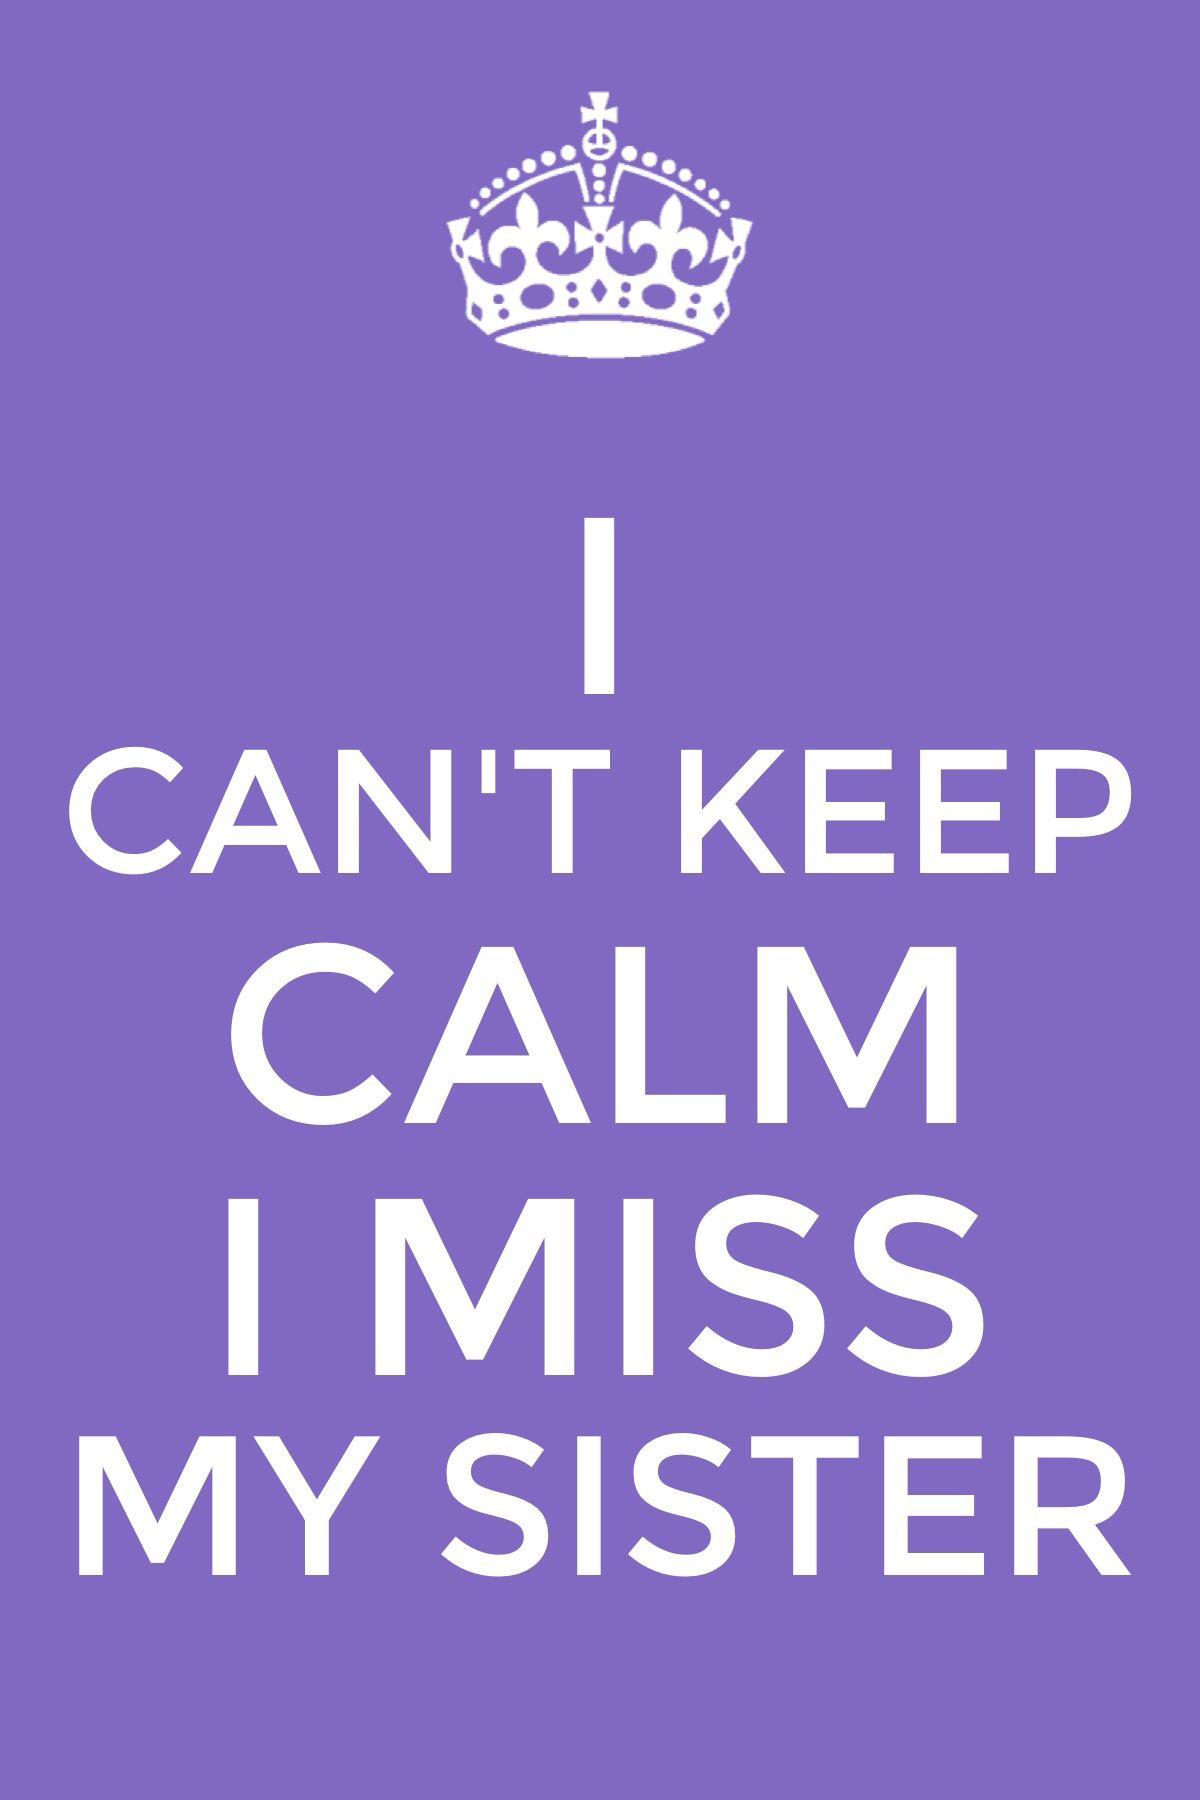 i miss you little sister quotes -#main